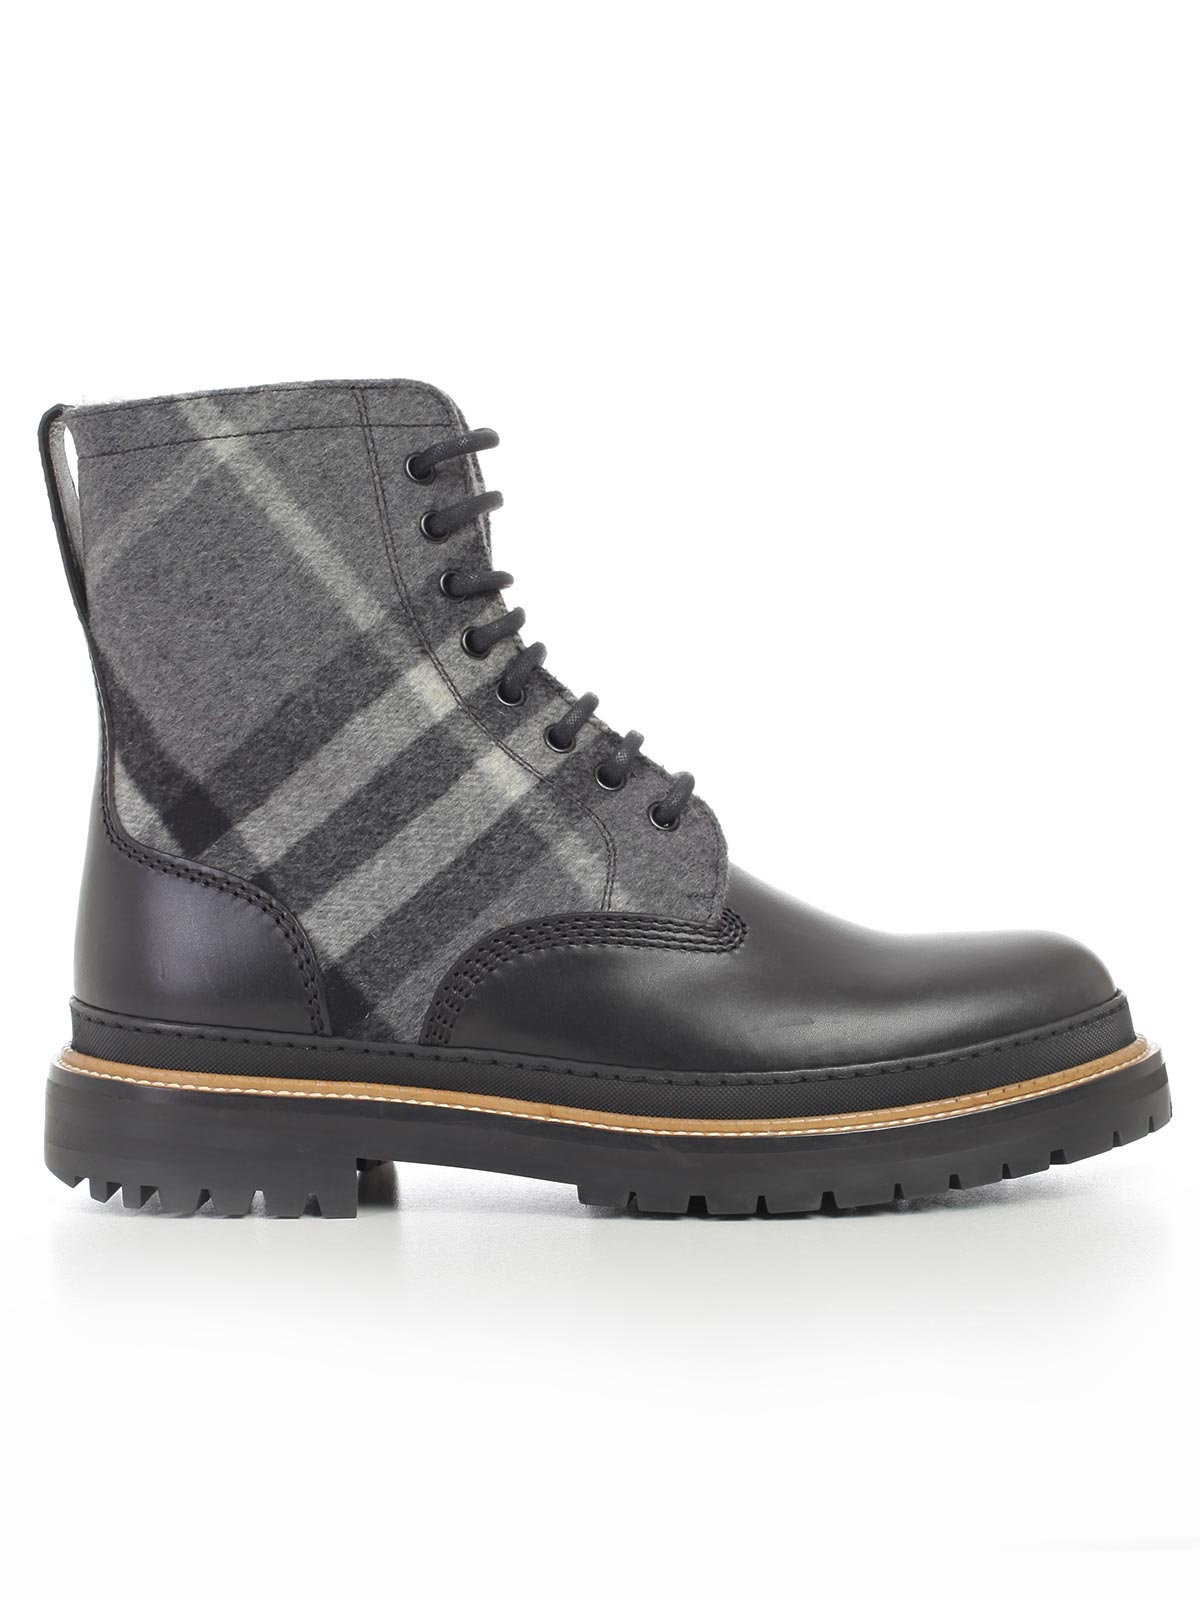 Picture of BURBERRY Boots